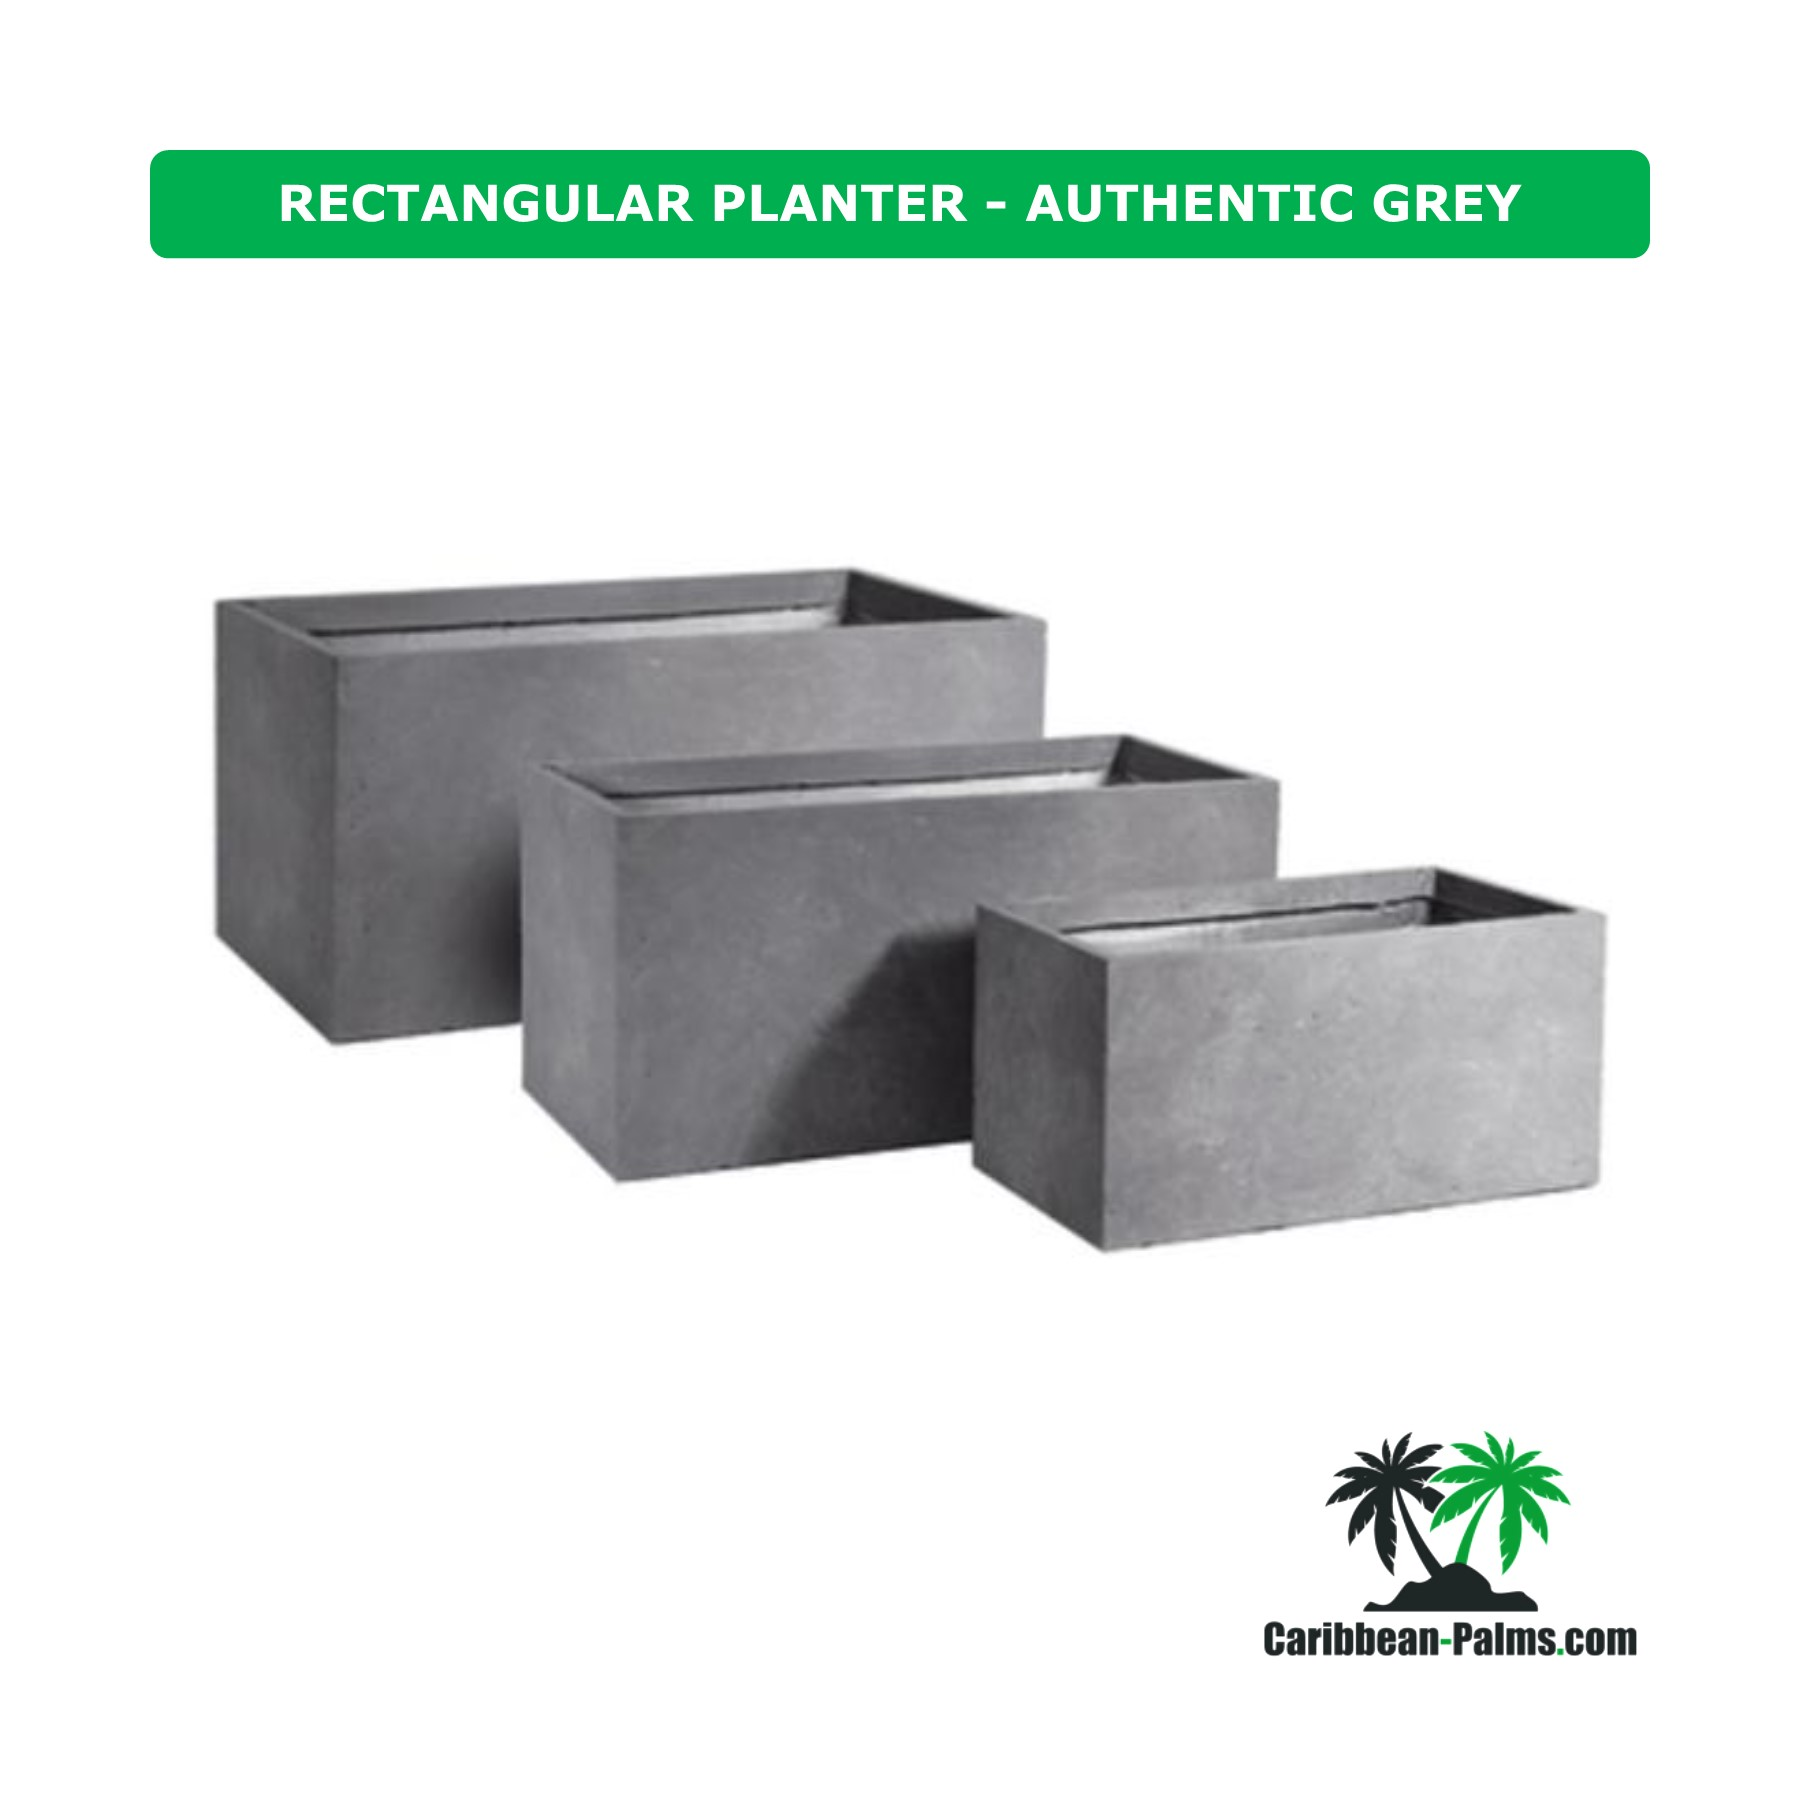 RECTANGULAR PLANTER AUTHENTIC GREY